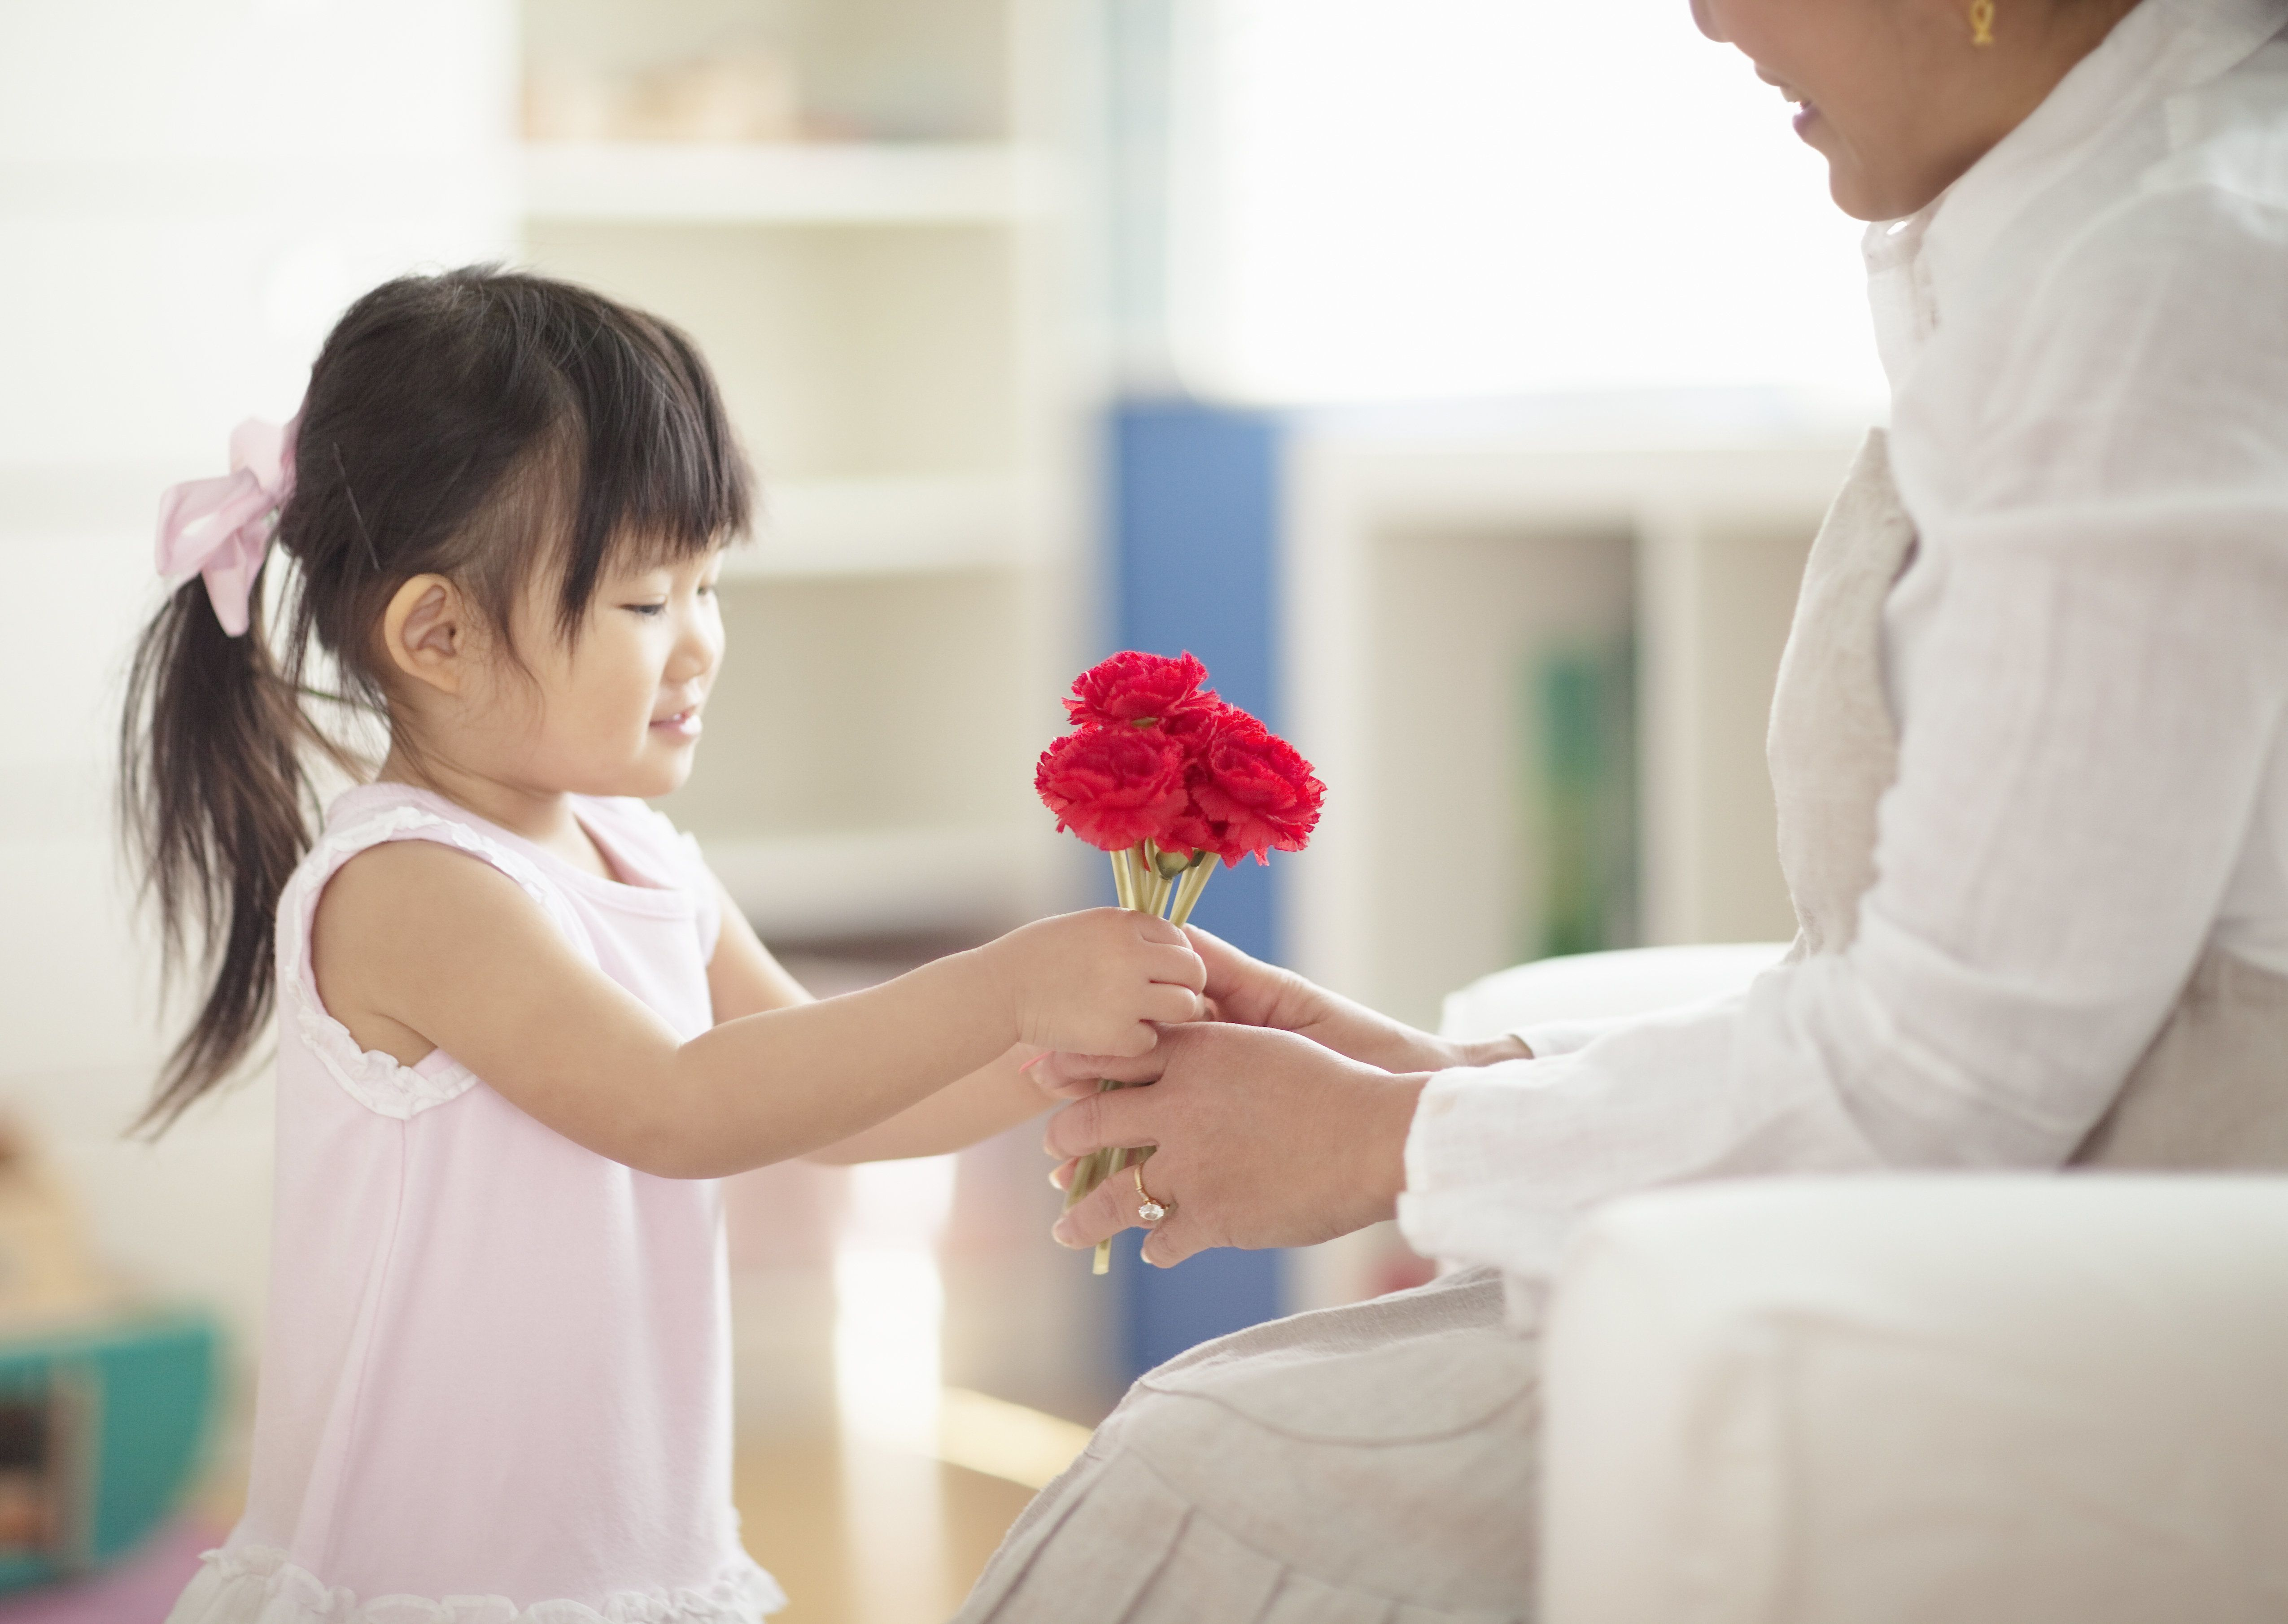 Countries around the world have different Mother's Day dates and practices.